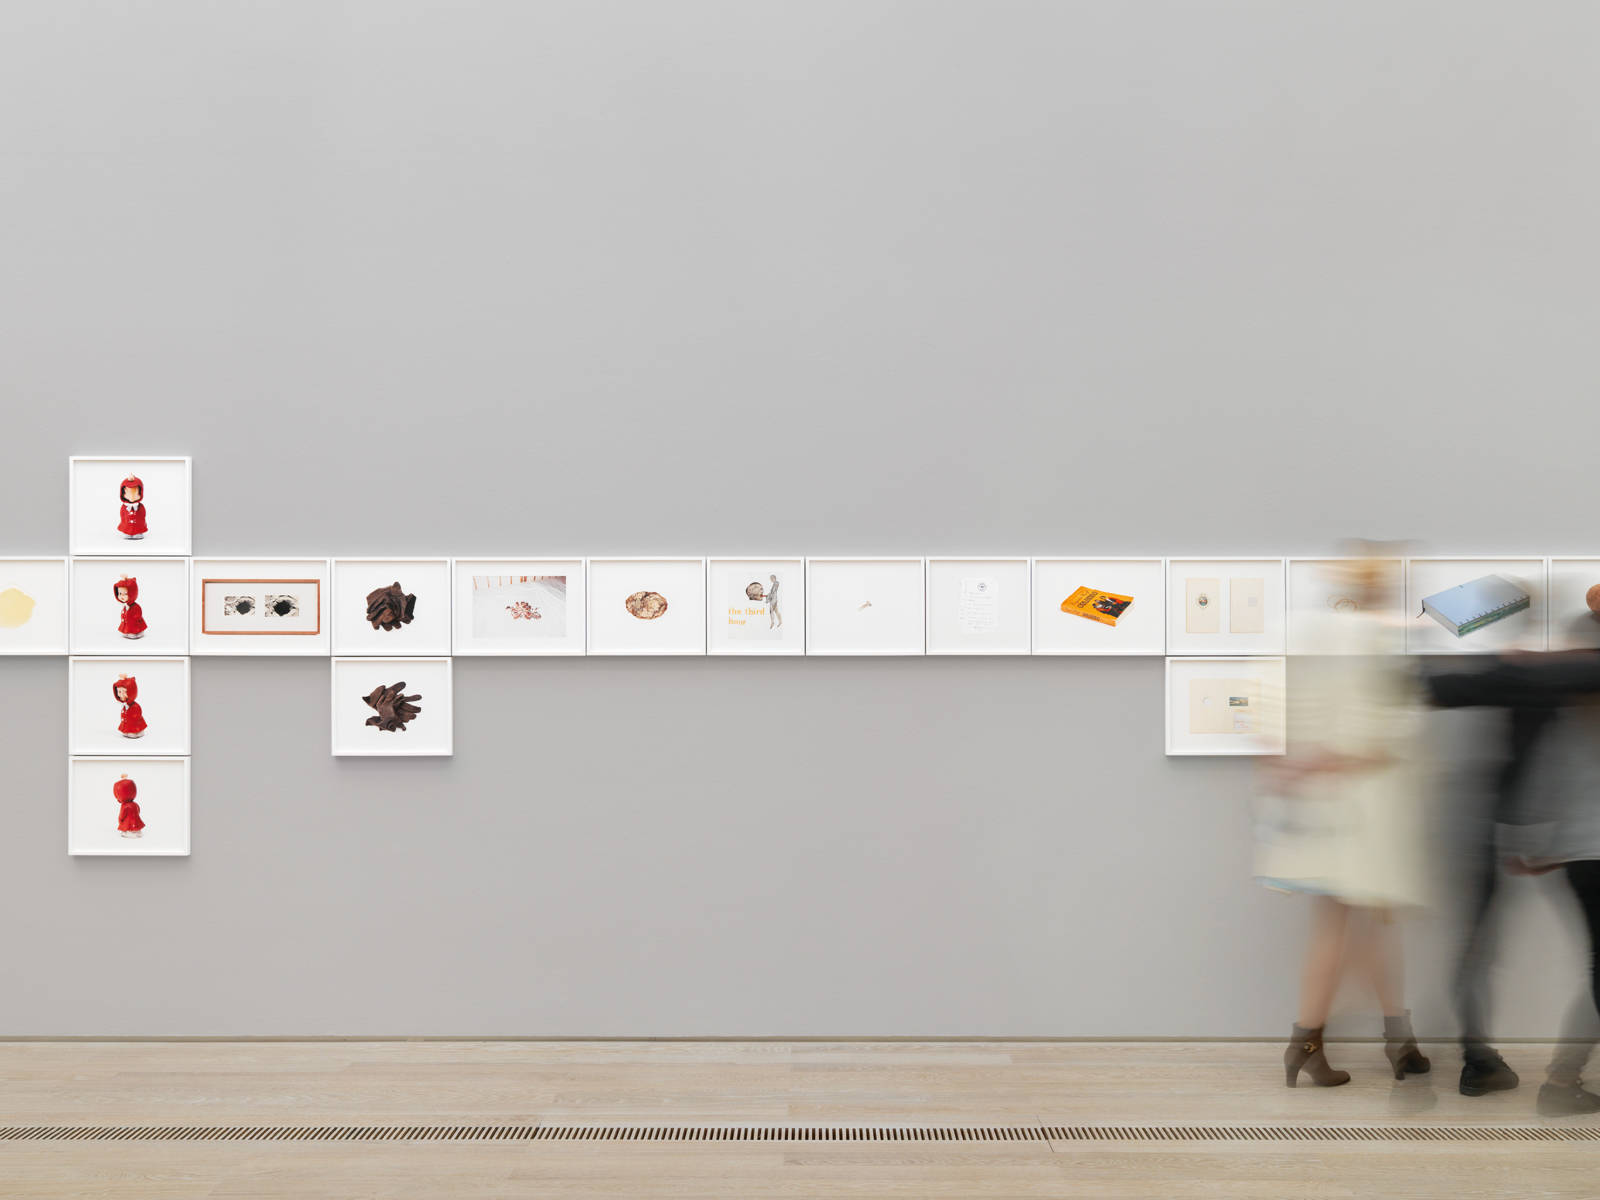 Roni Horn / Exhibition view, Fondation Beyeler, Riehen / 2016